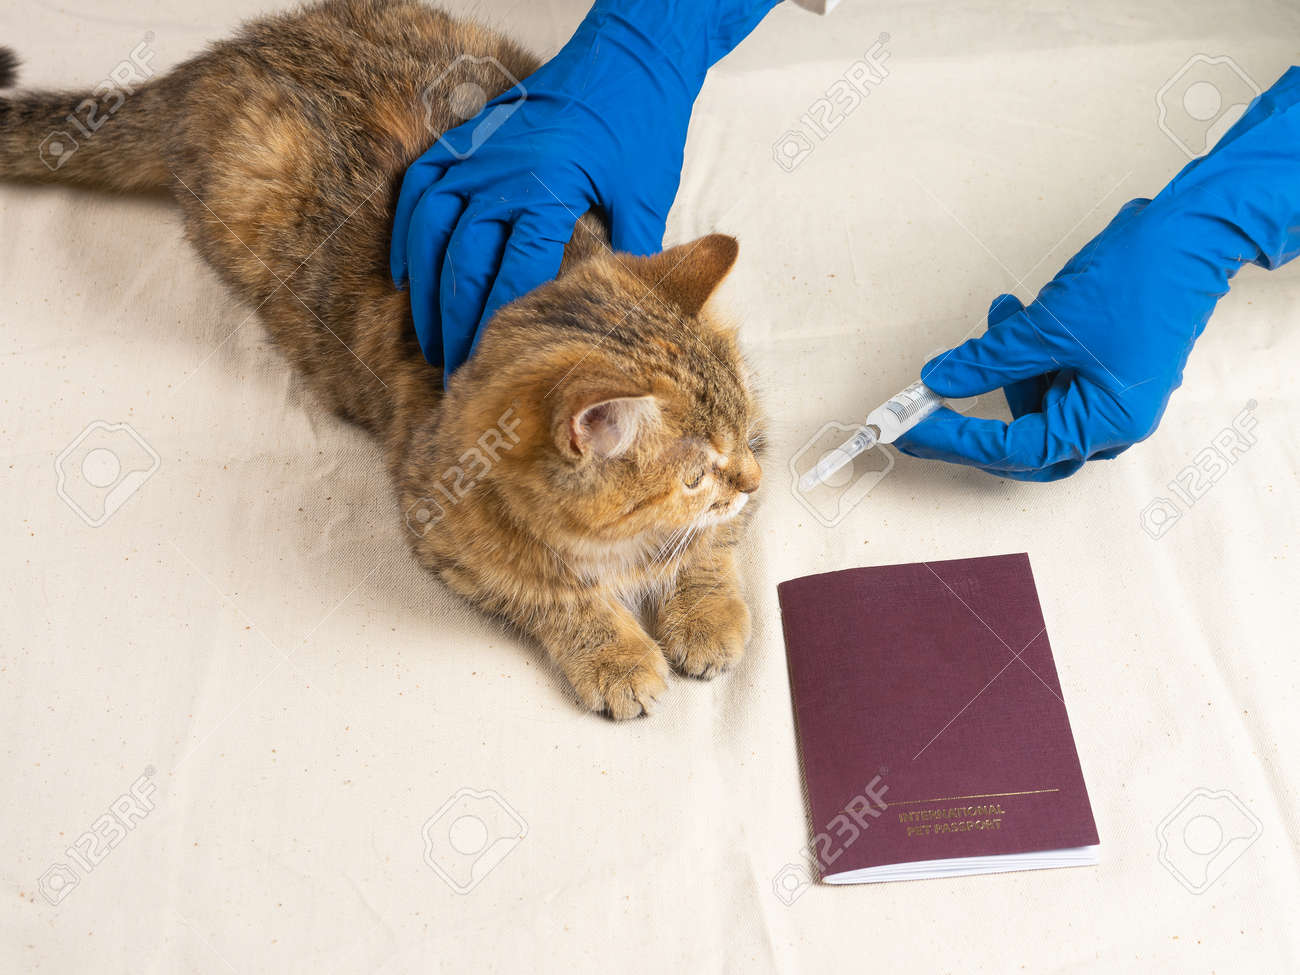 The cat is on the vets table for the annual vaccination. The concept of annual vaccination of pets. - 167171284